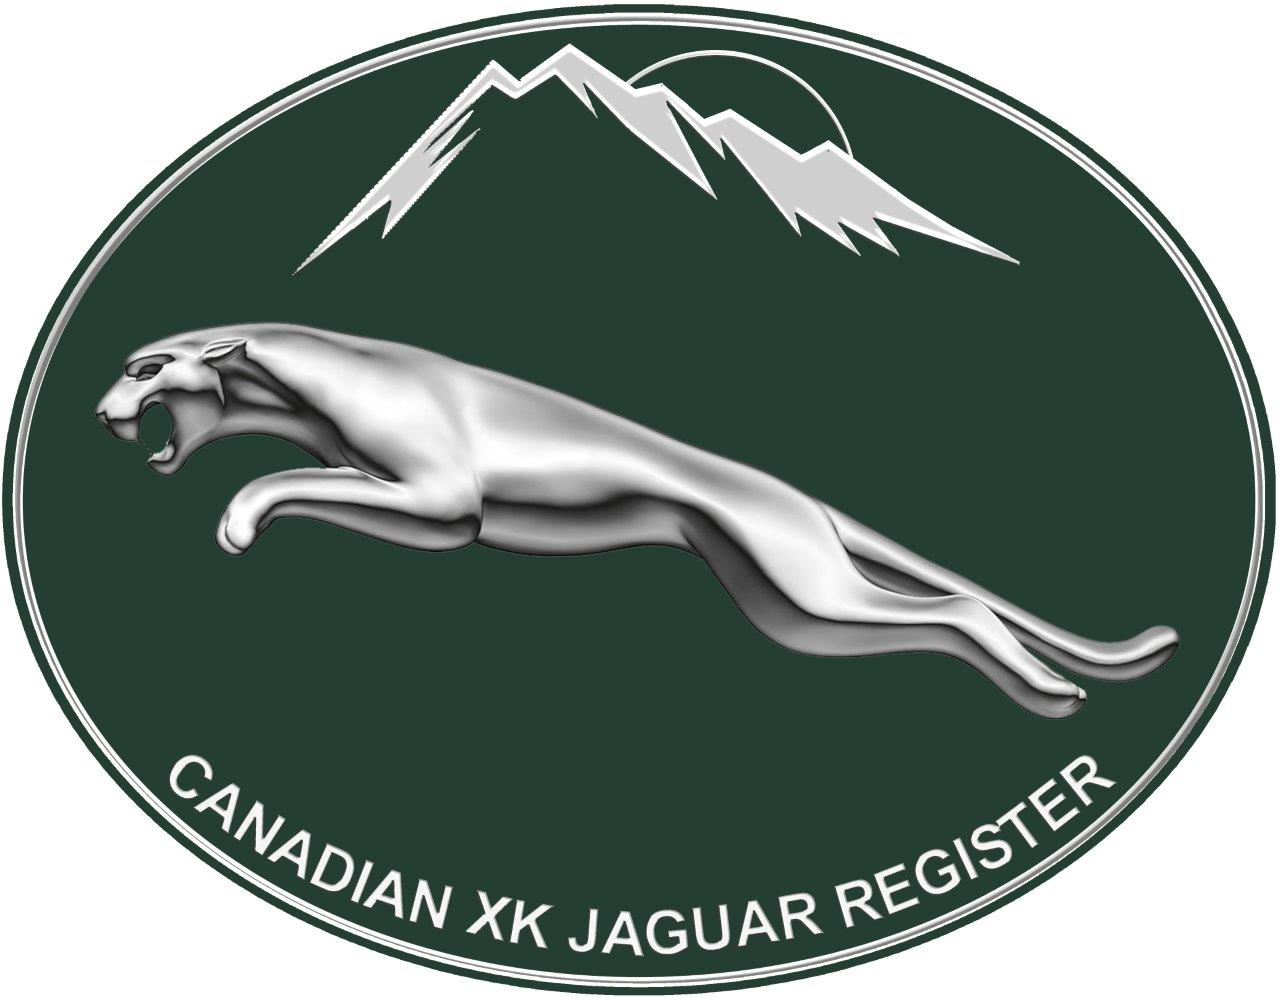 Canadian XK Jaguar Register